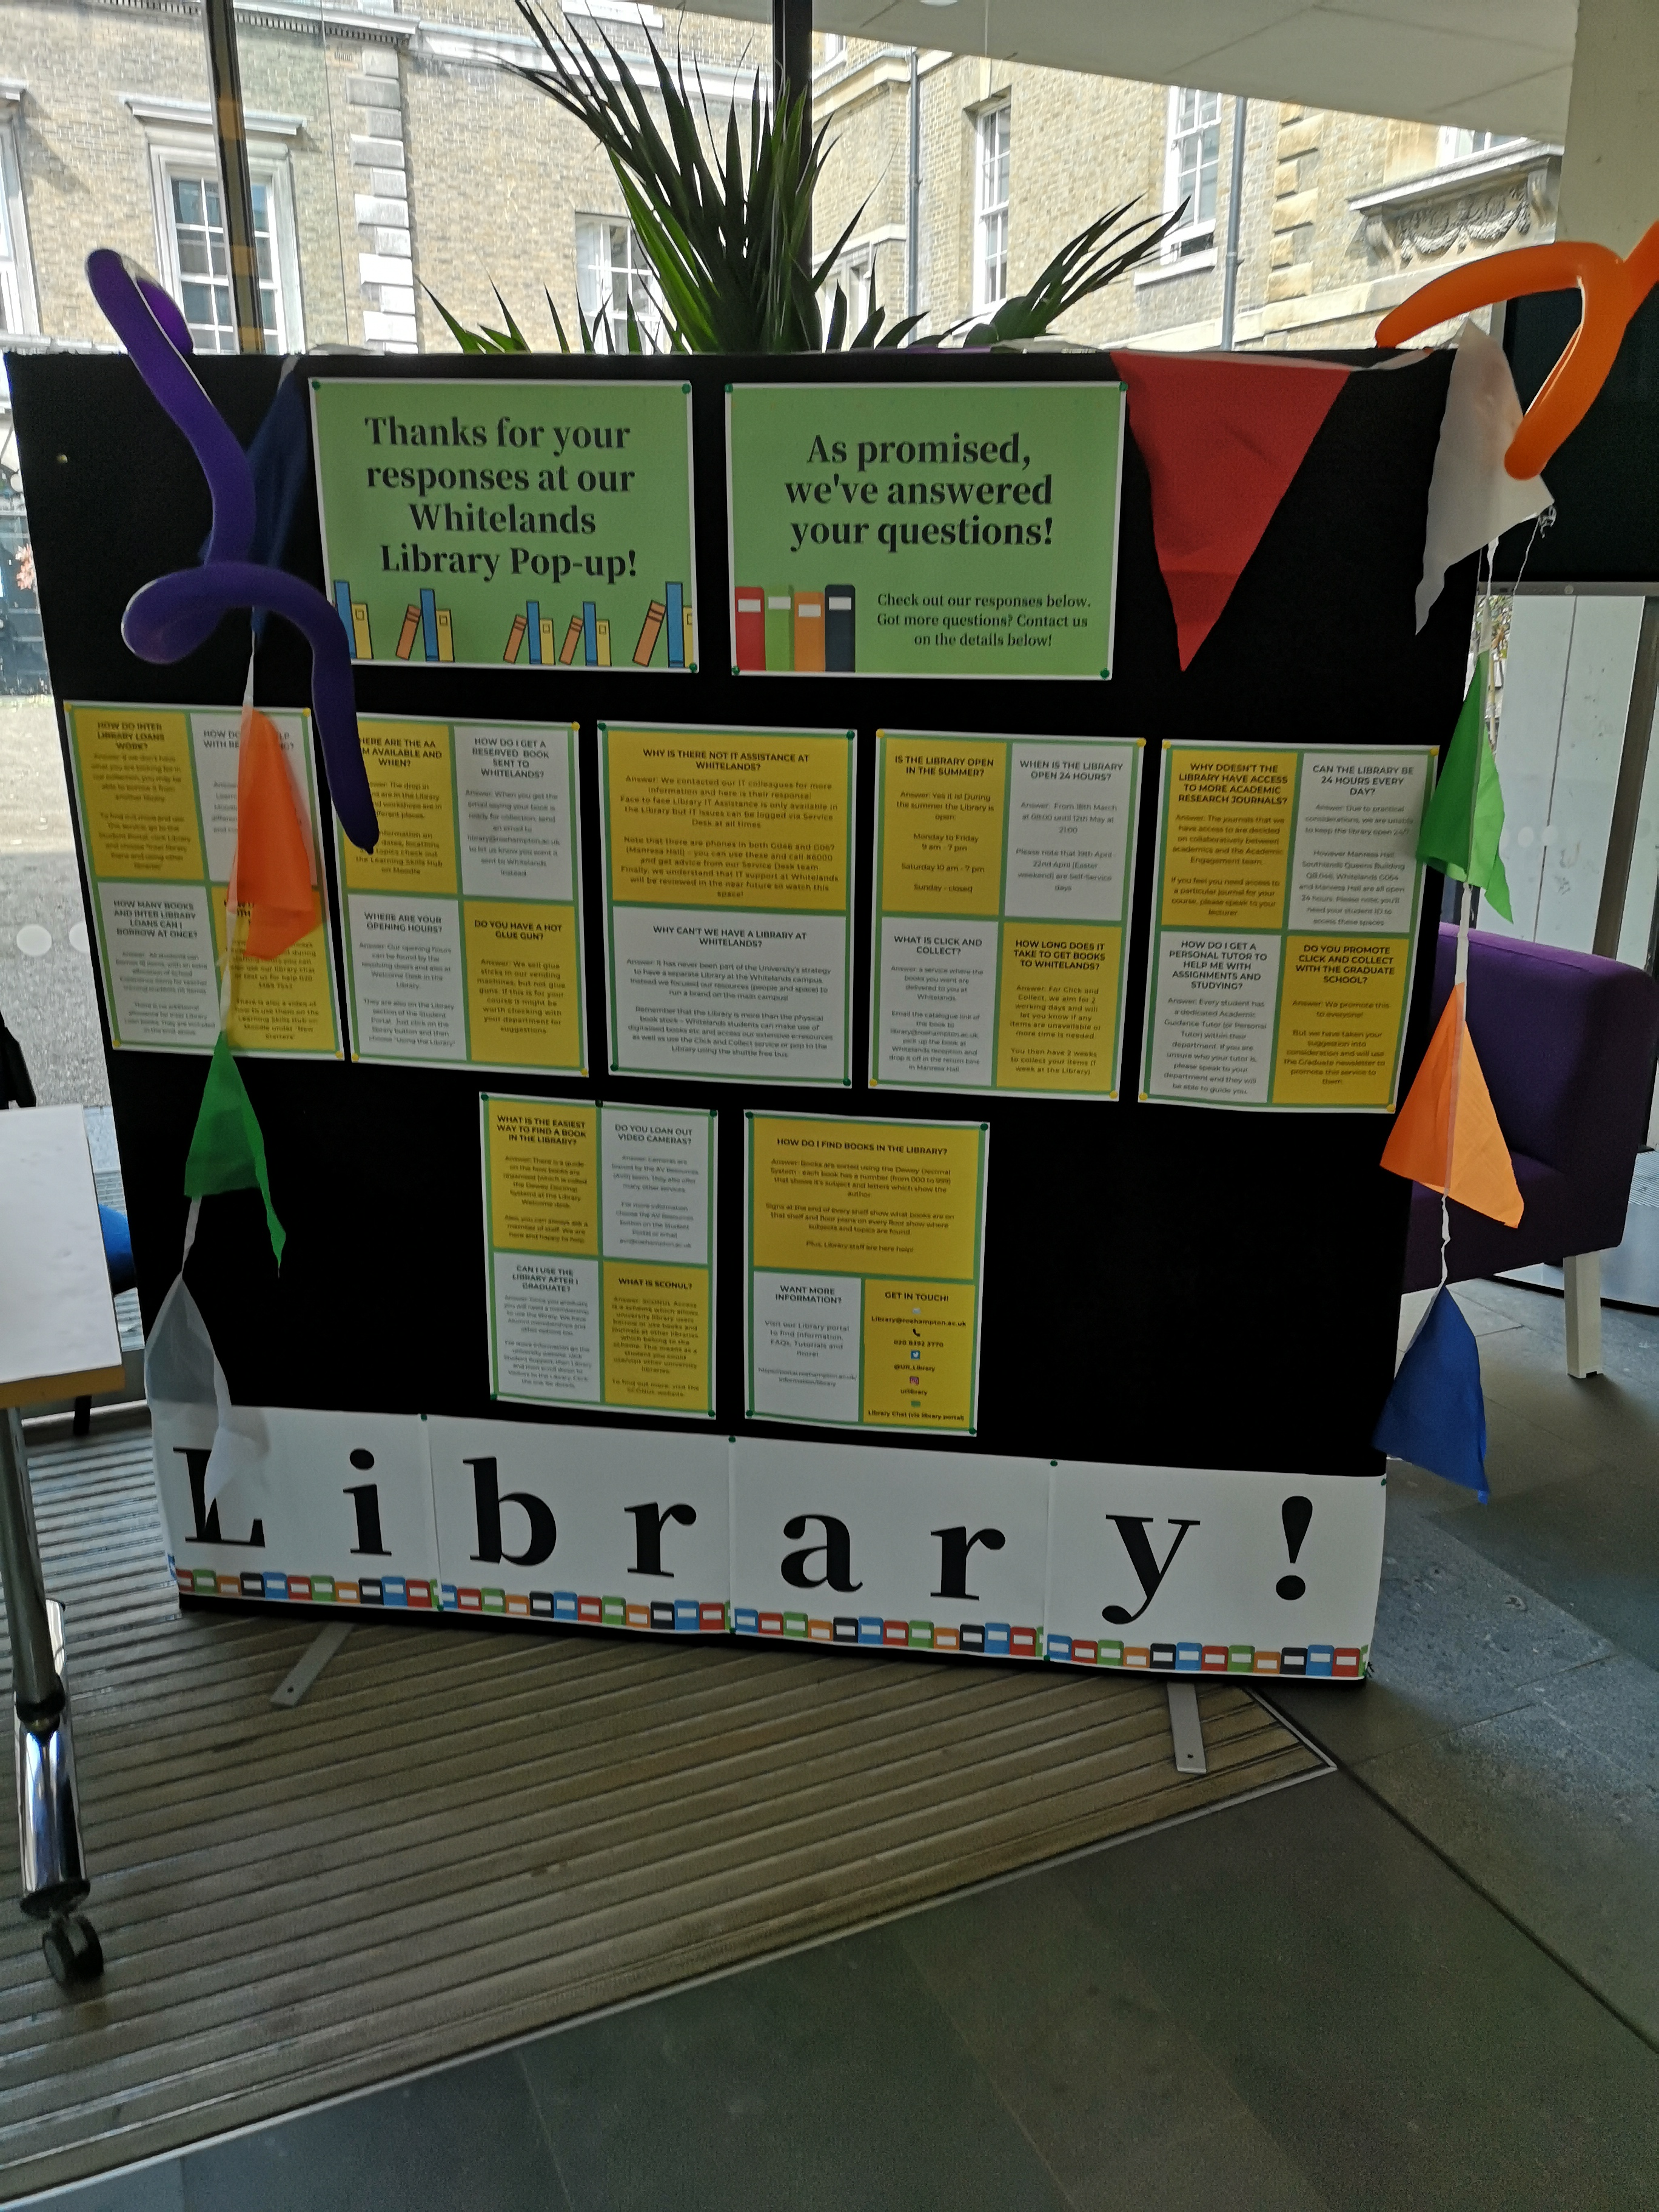 Library display at Whitelands after a pop-up event